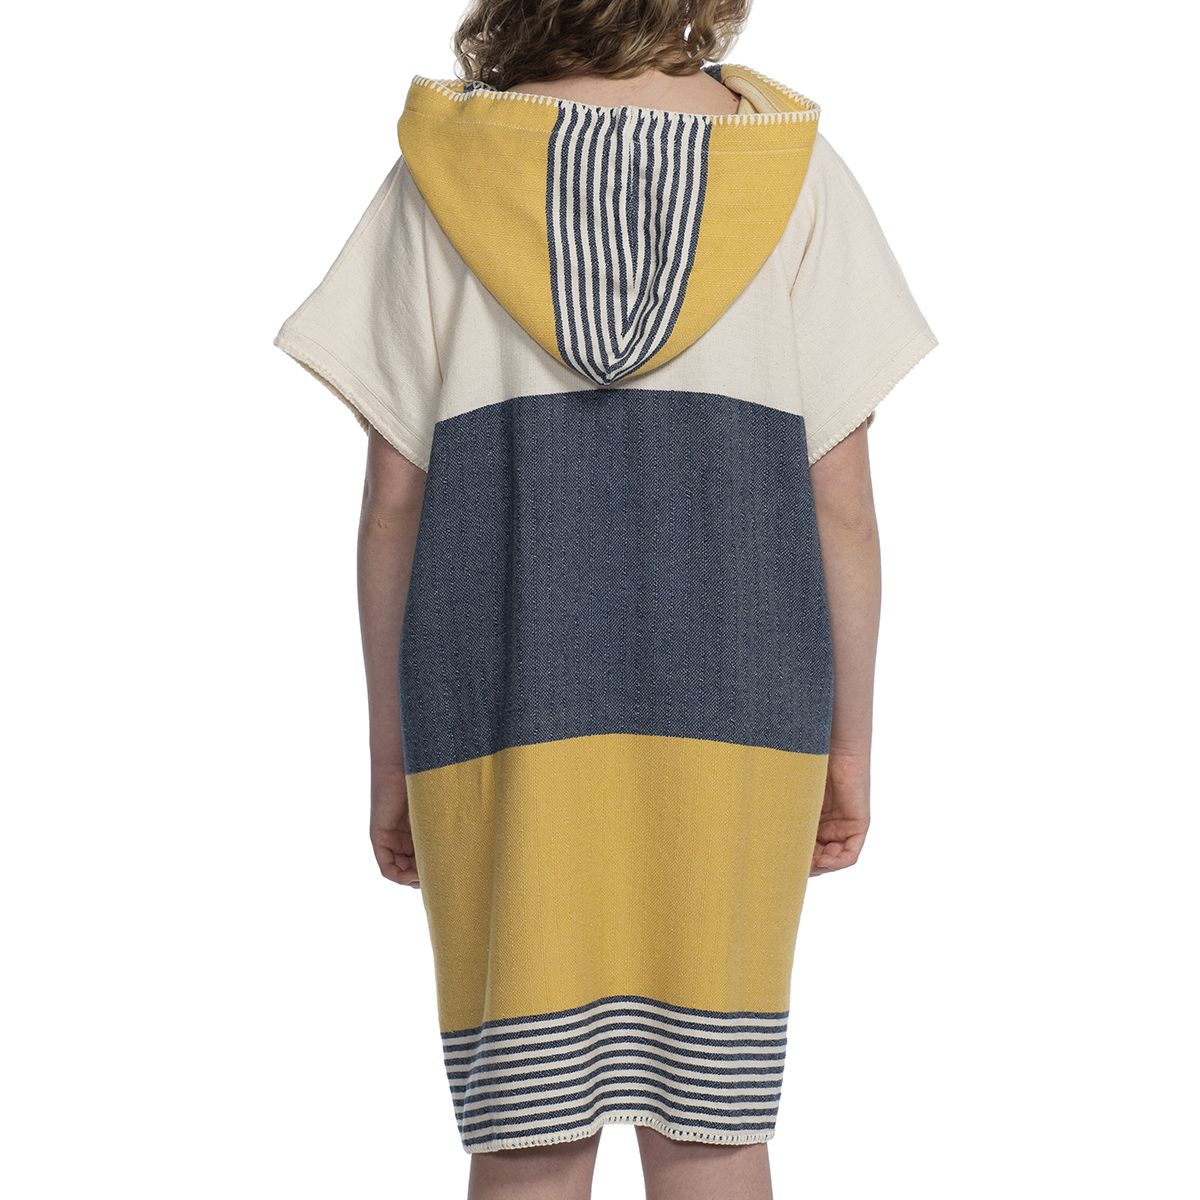 Adult Poncho - Twin Sultan / Navy - Yellow